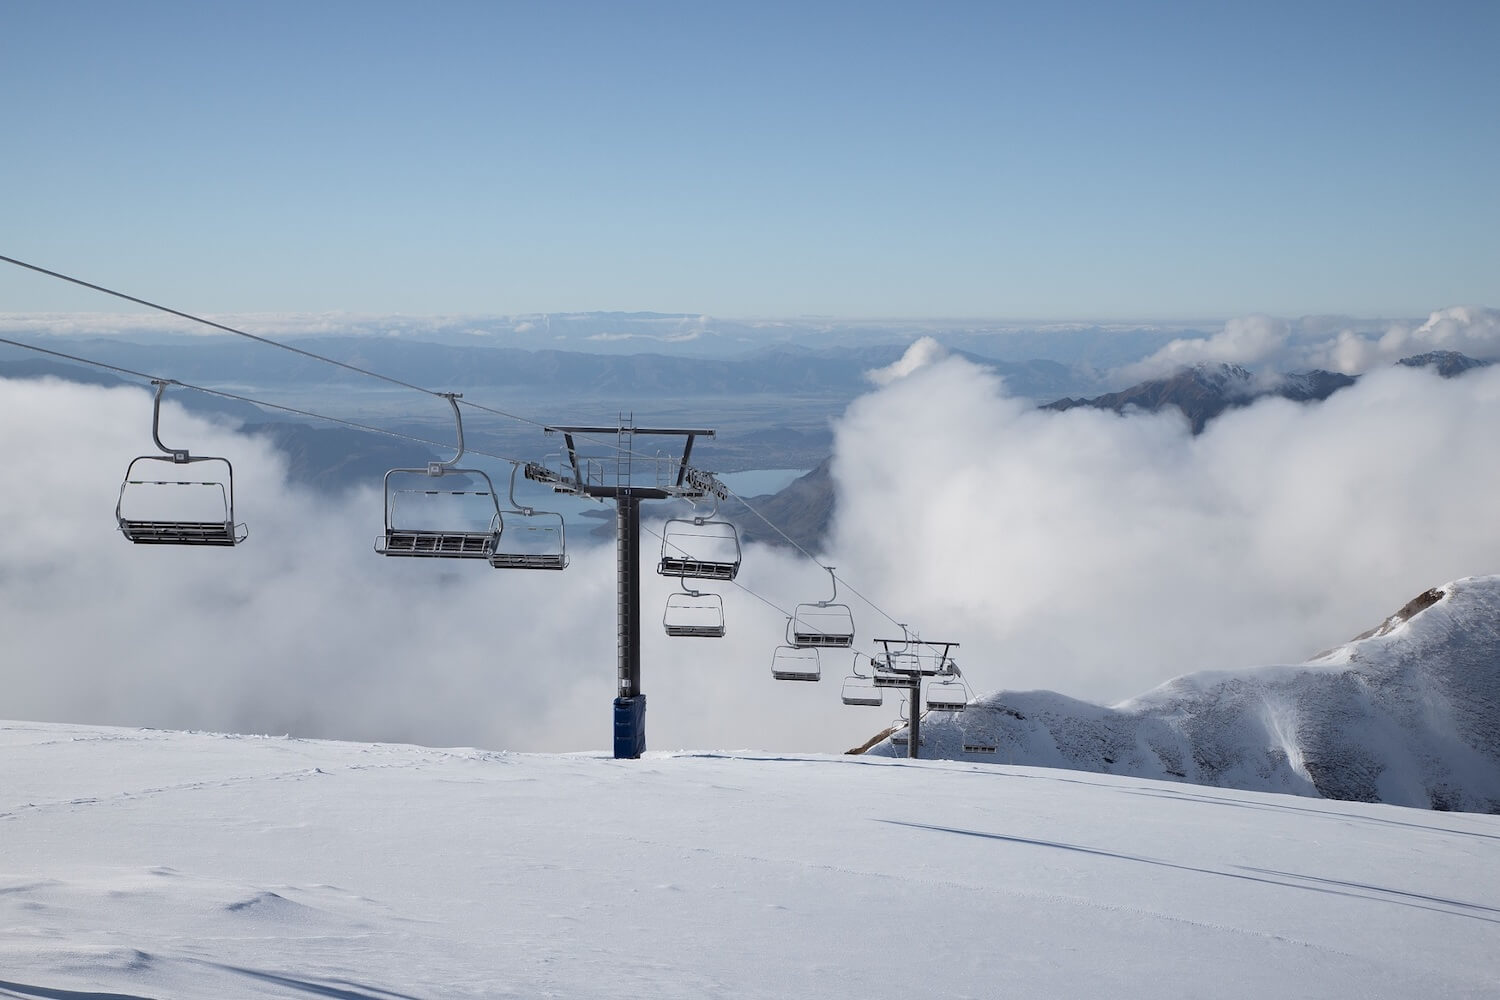 TREBLE CONE'S SADDLE BASIN IS READY AND WAITING FOR OPENING ON SATURDAY JUNE 23. PHOTO: JACKSON LANA